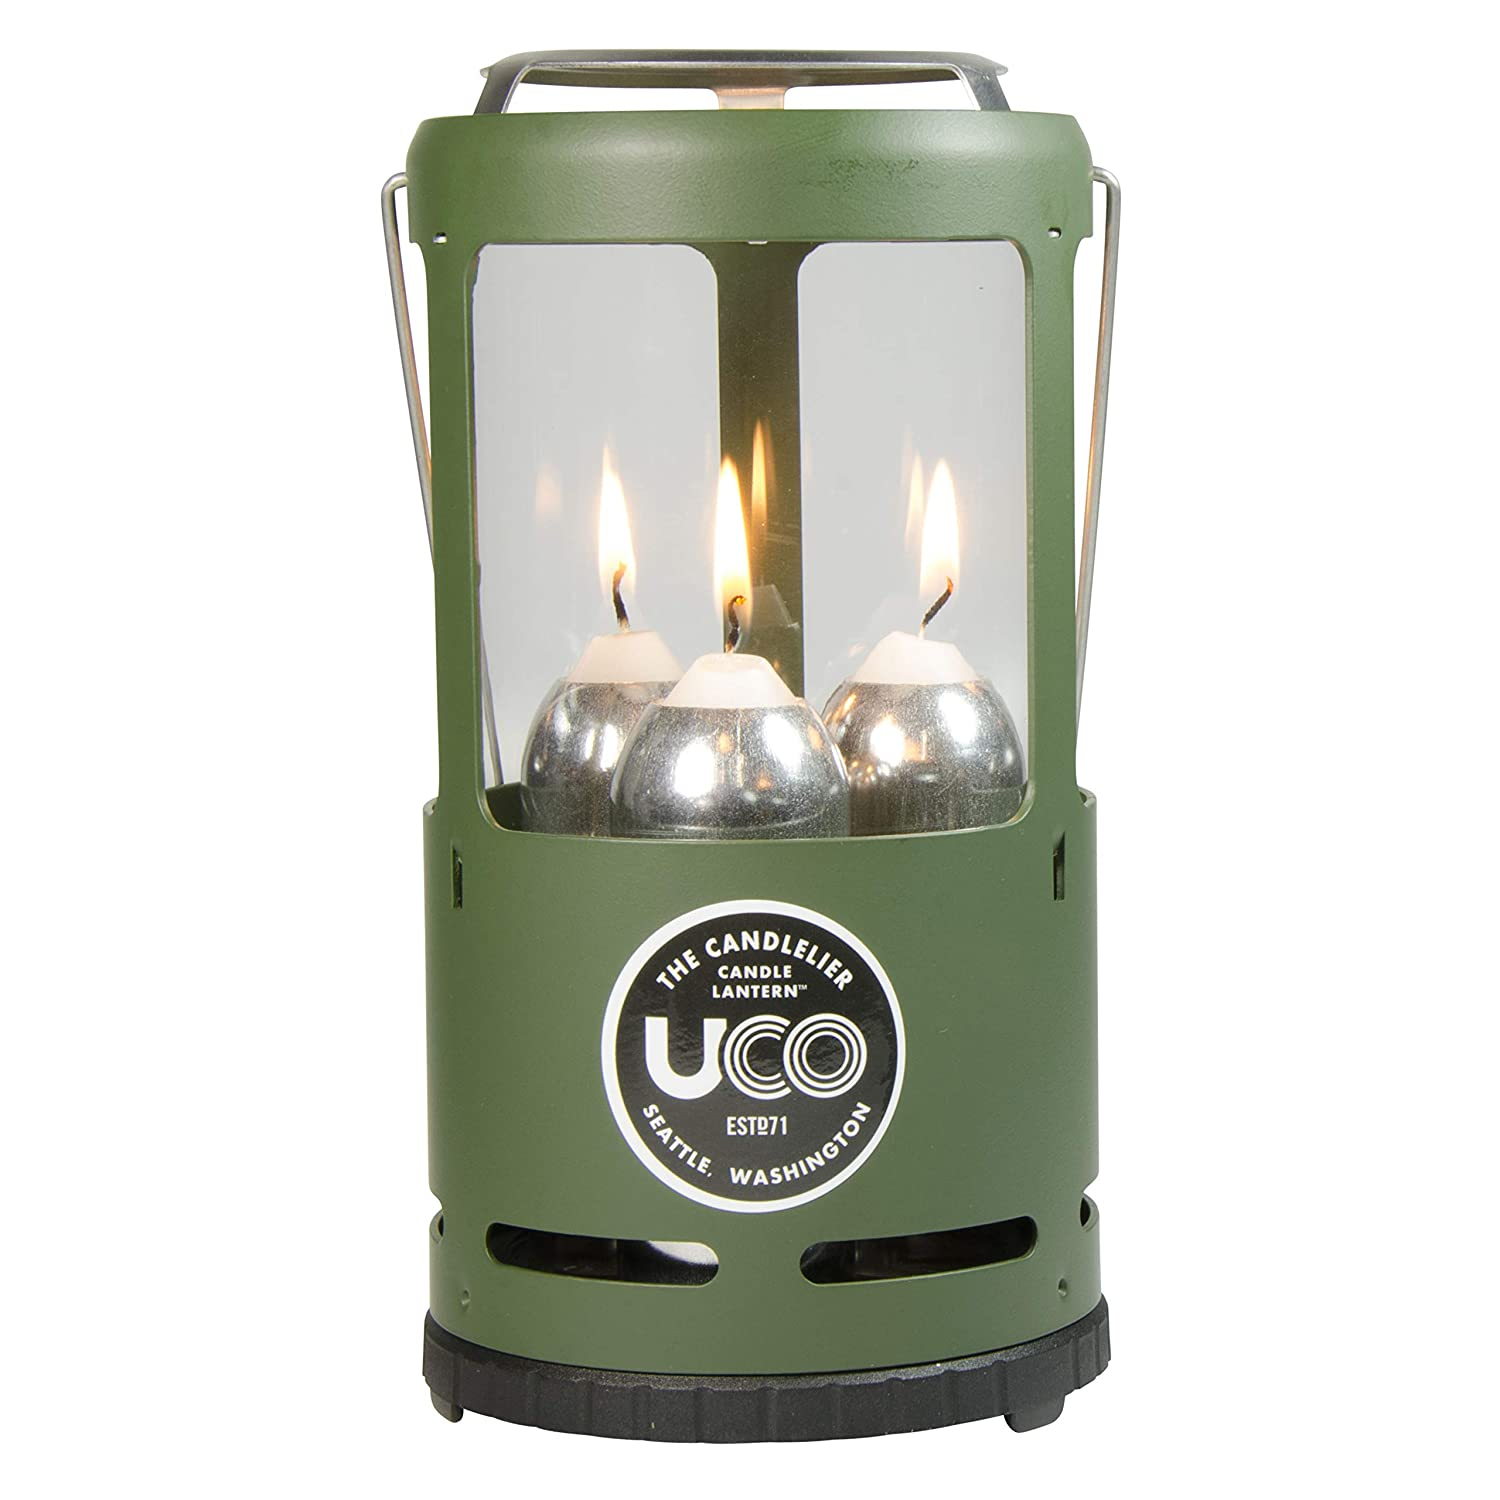 BRS BRS-116 Outdoor Multi-functional Cooking Camping Wood Burning Stove with Air Blower Outdoor Cookware